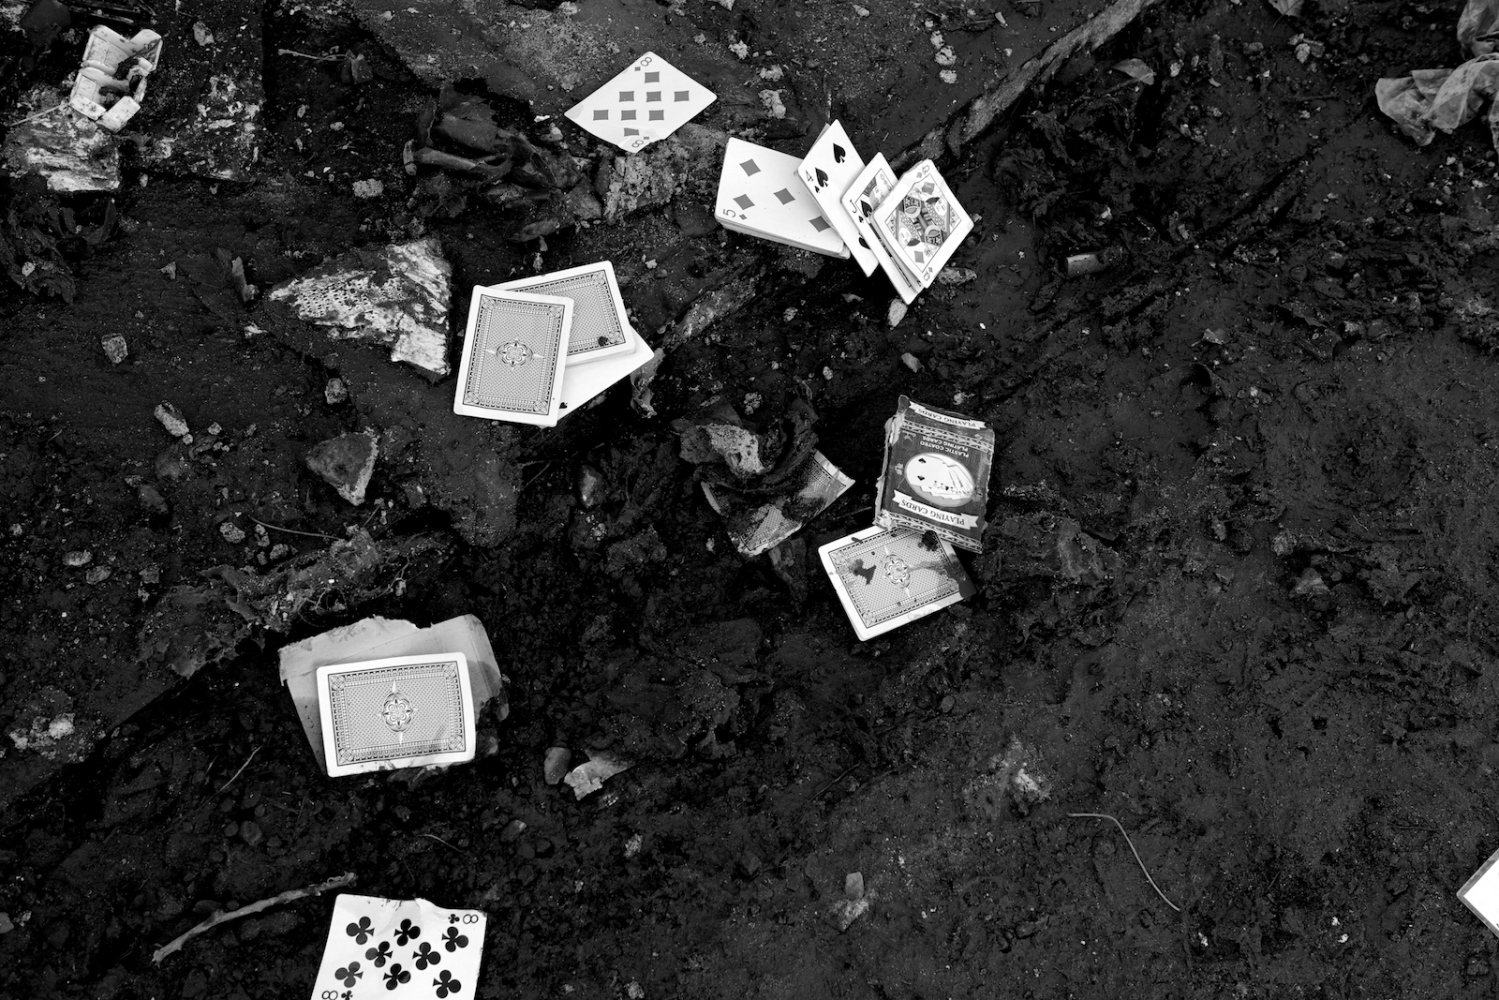 Playing cards lay in the mud in New Dorp Beach, Staten Island, N.Y. on Nov. 9, 2012. New Dorp Beach was devastated by Hurricane Sandy and now faces the long road to recovery.